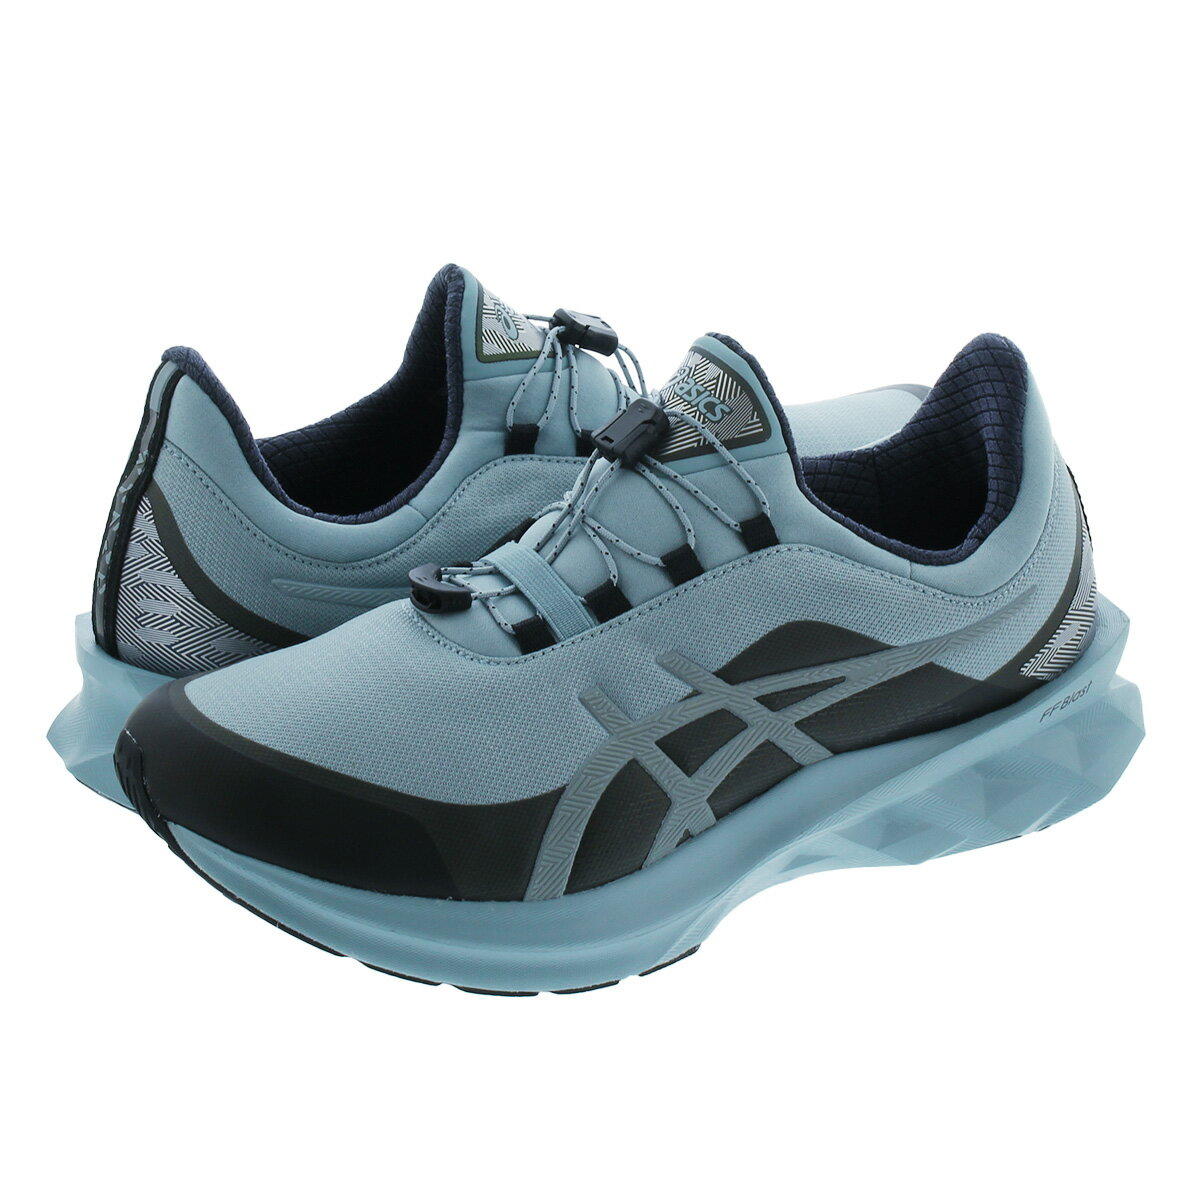 メンズ靴, スニーカー ASICS SPORTSTYLE NOVABLAST LIGHT STEELLIGHT STEEL 1201a133-400